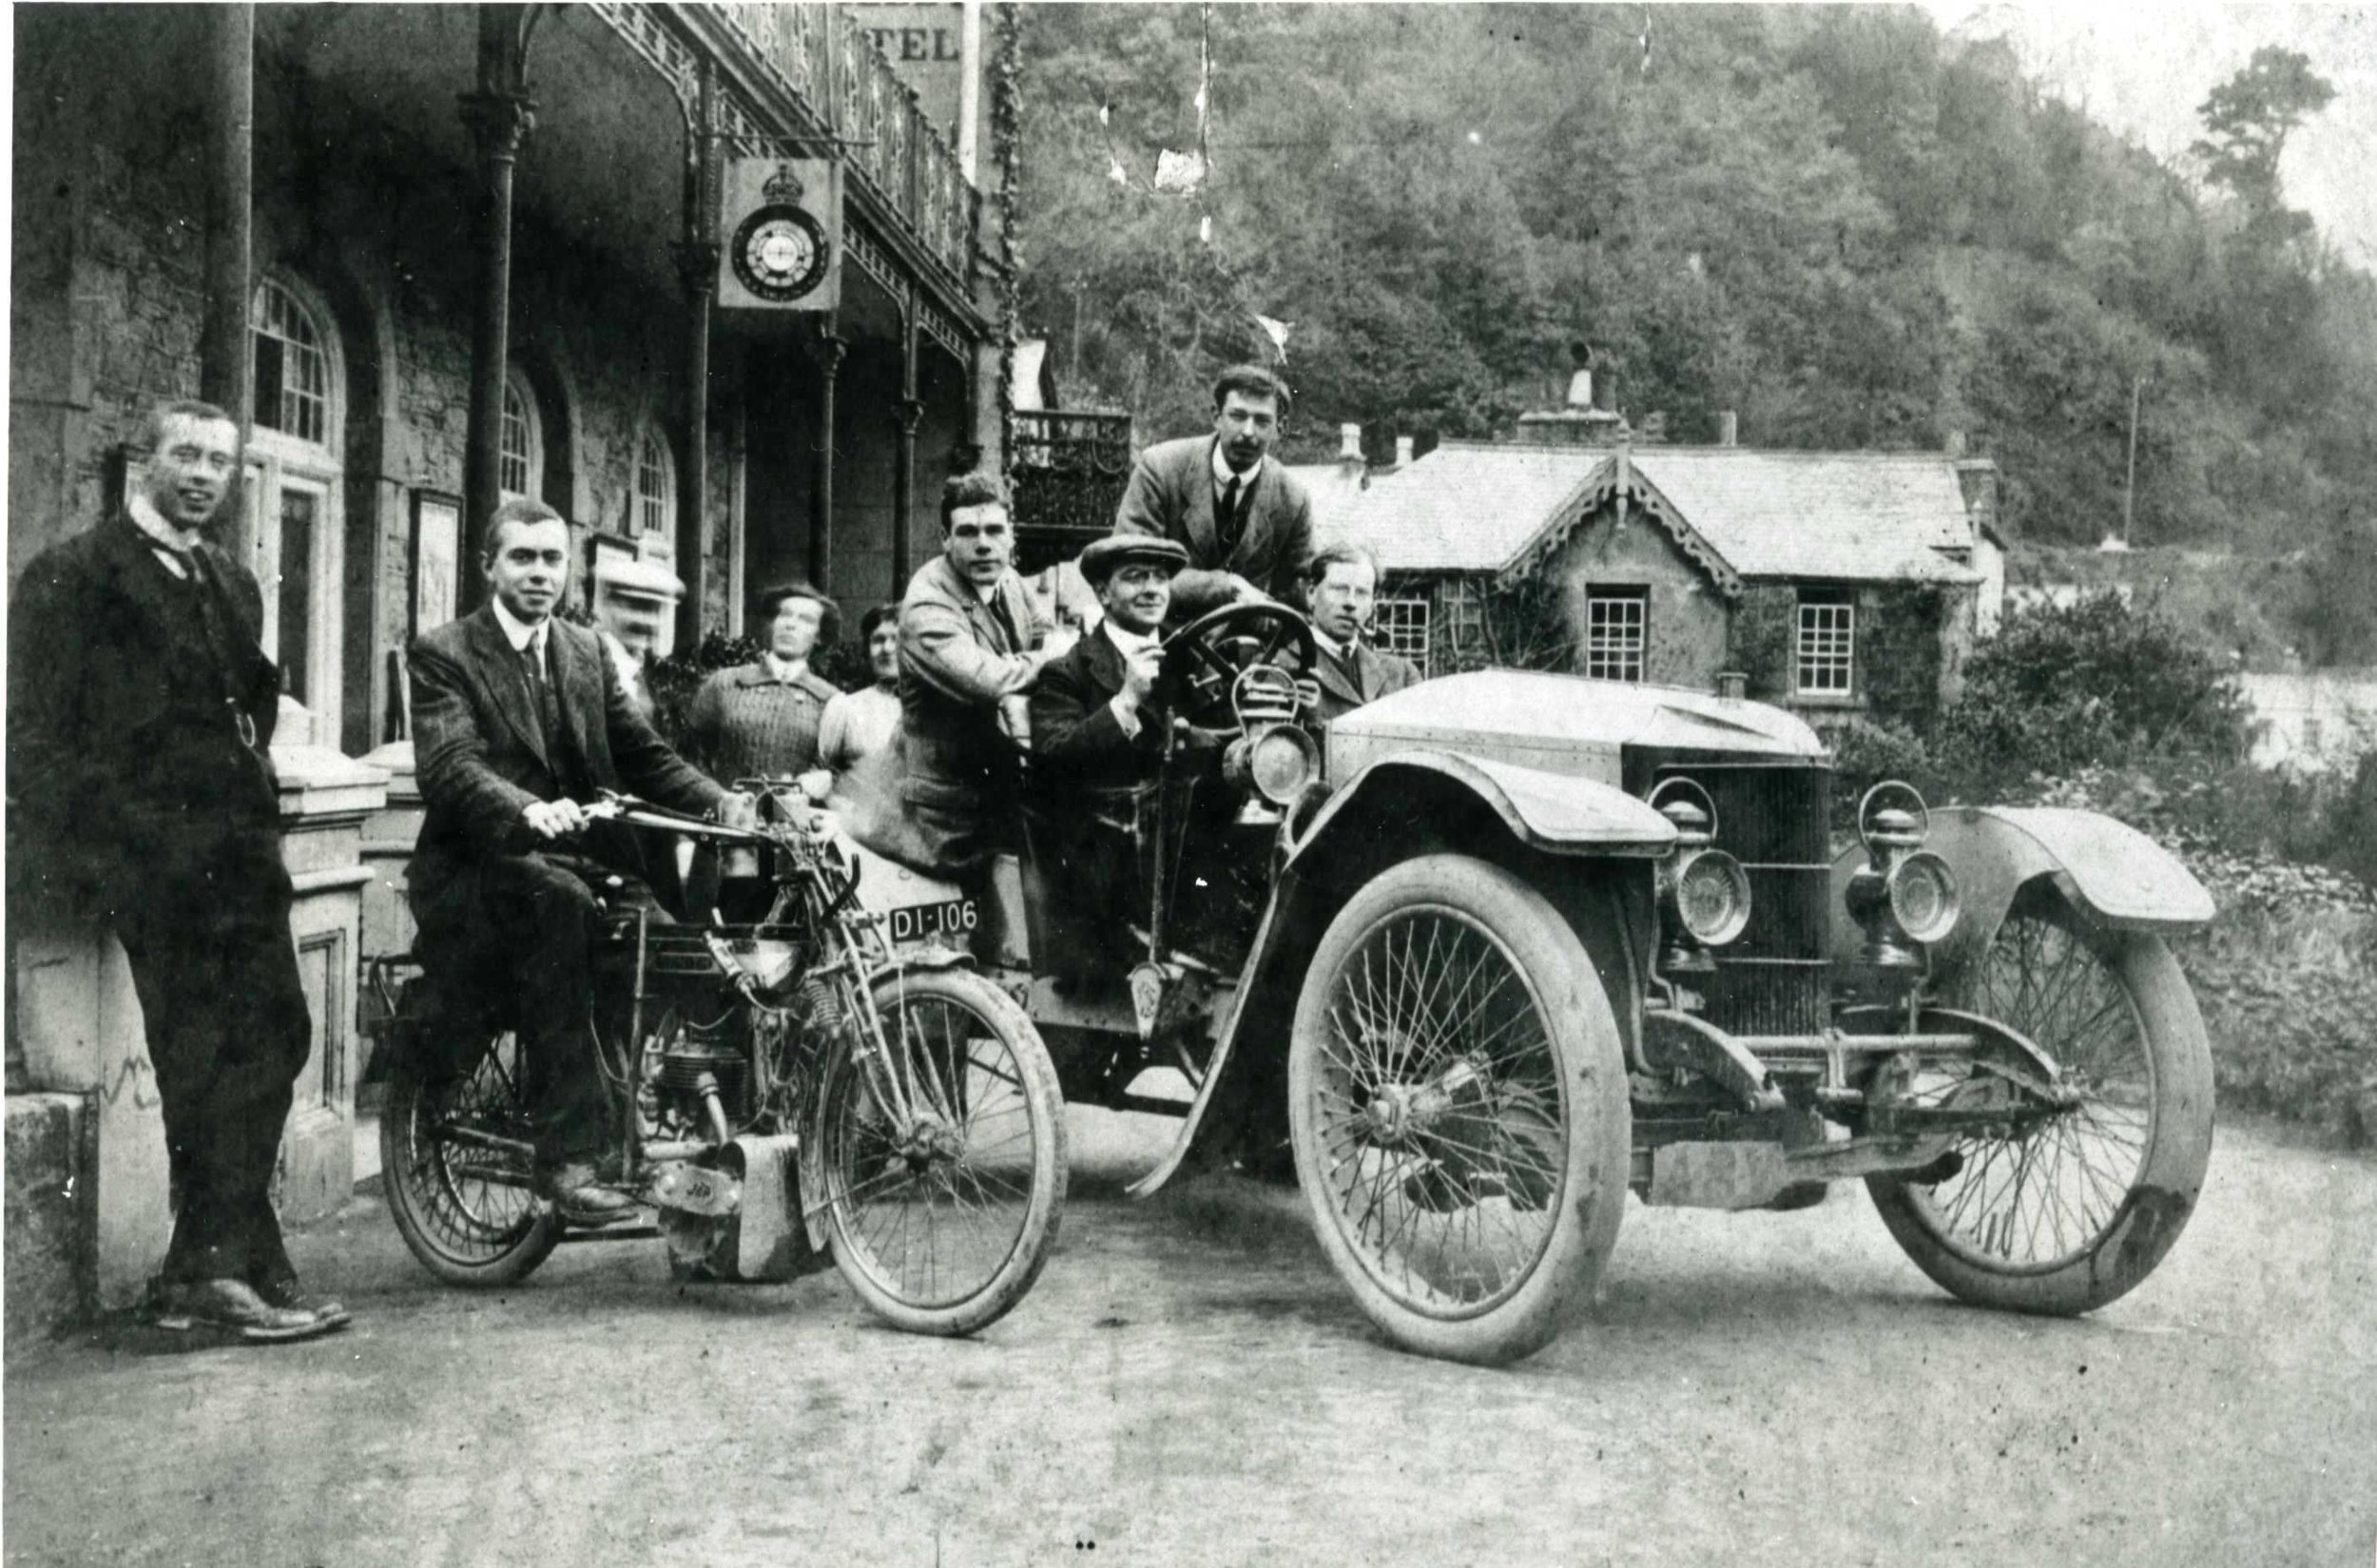 Designer Laurence Henry Pomeroy (1883-1941) drives a prototype Prince Henry.at the hotel in Lynmouth where he worked on engines for Vauxhall's 1914 racing cars.